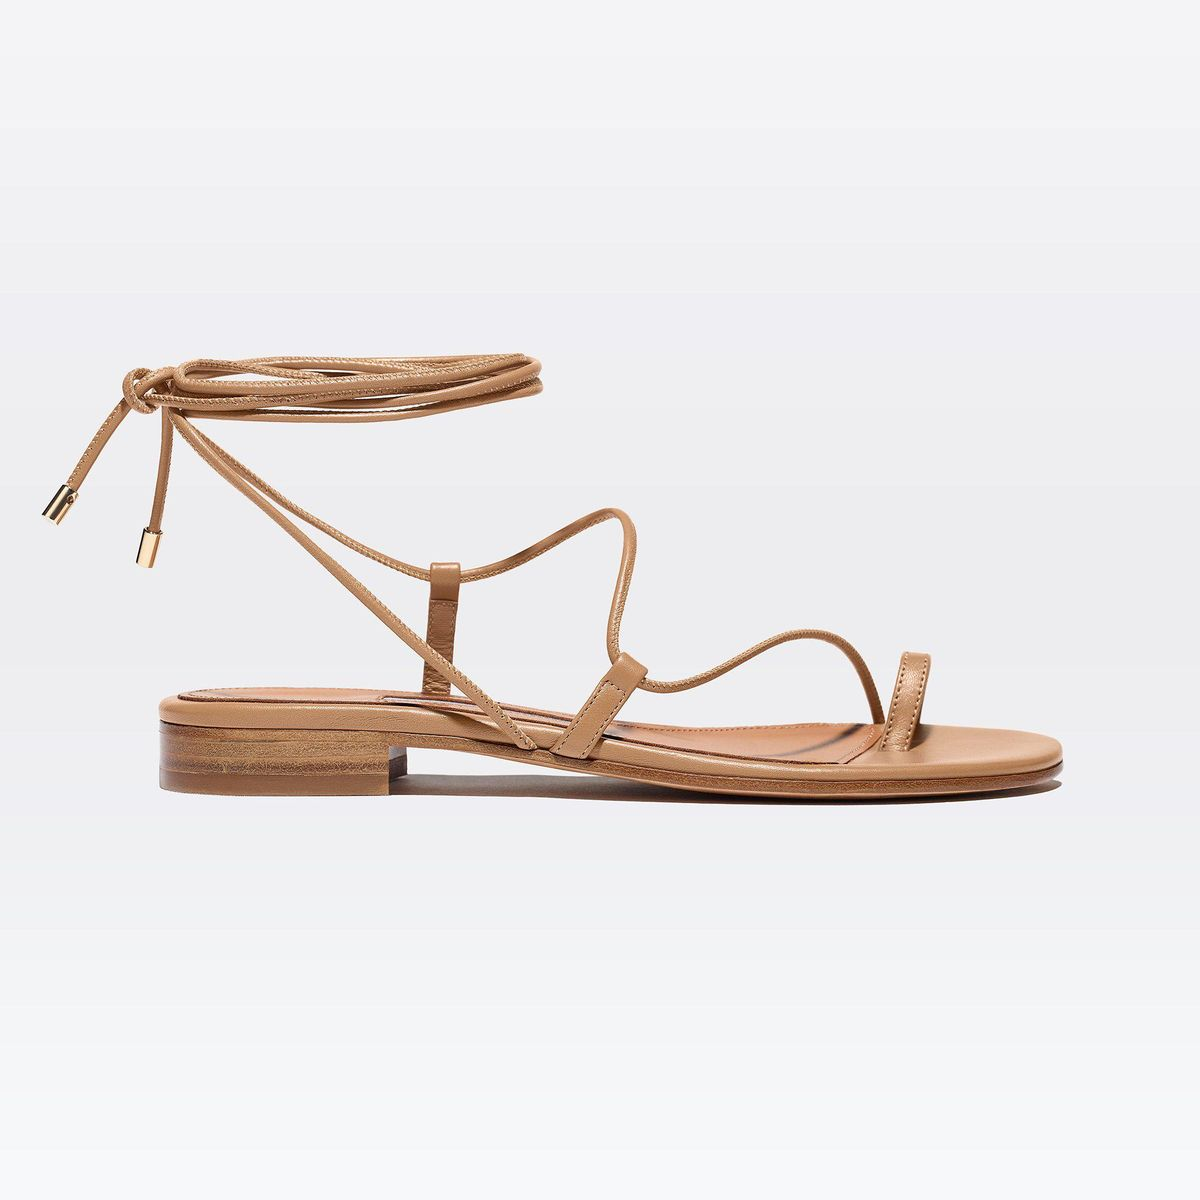 emme parsons susan in tan nappa